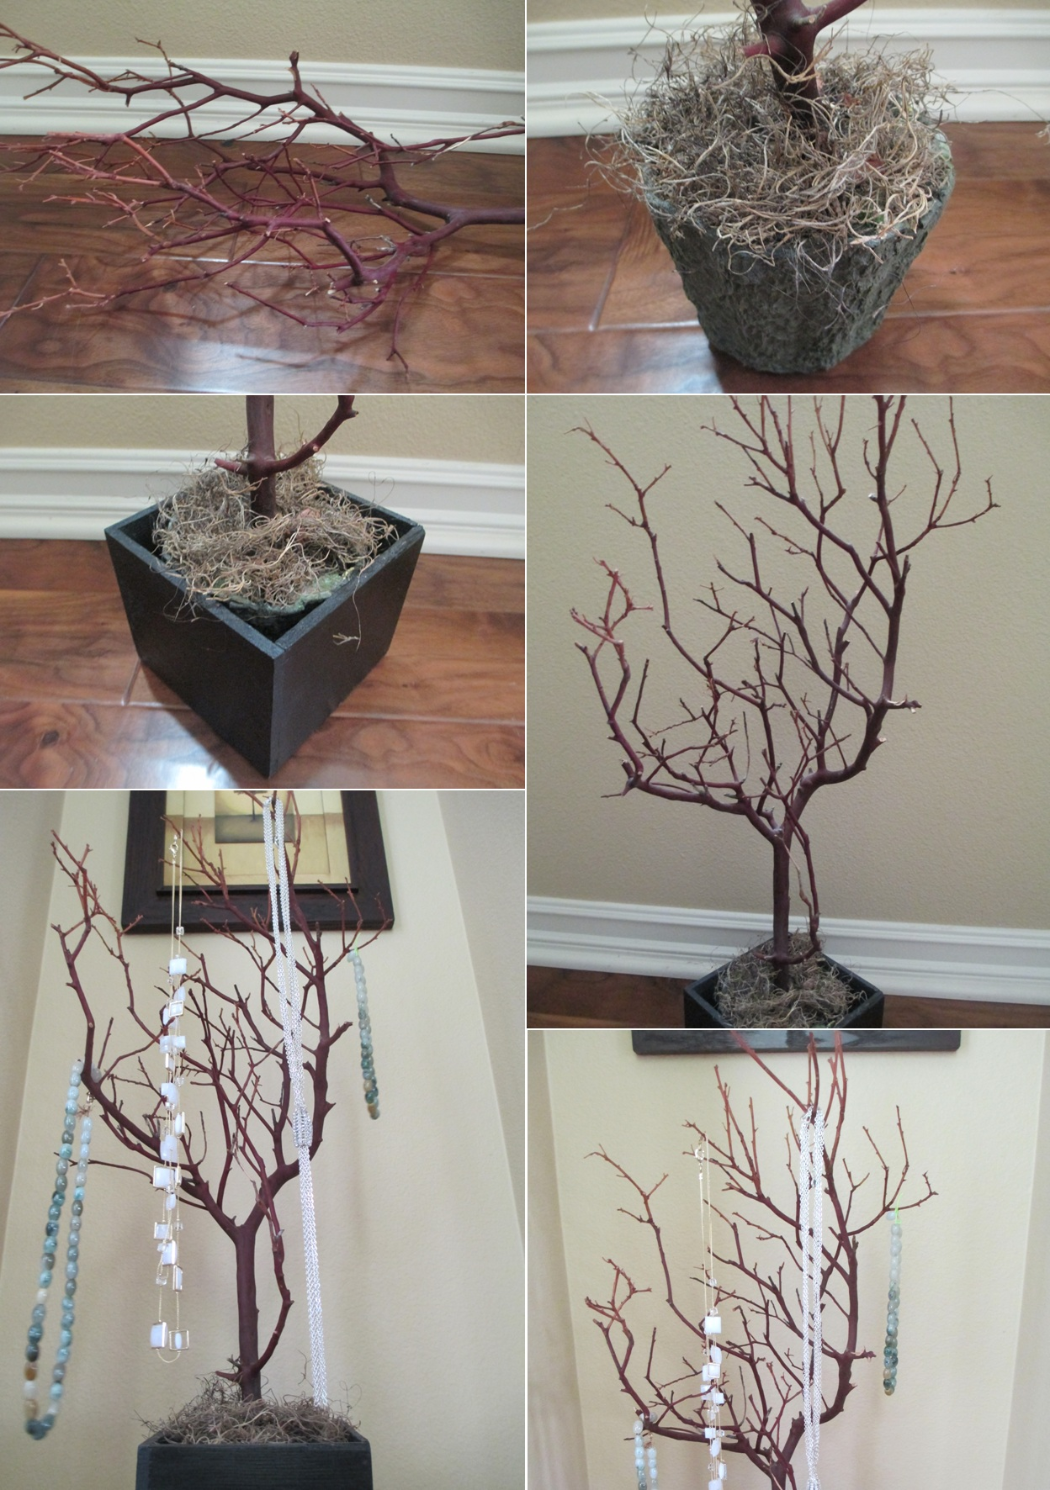 Tree Branch Jewelry Holder : branch, jewelry, holder, Tutorial, Jewelry, Holders, Branch, Holder, Bead&Cord, Holder,, Tree,